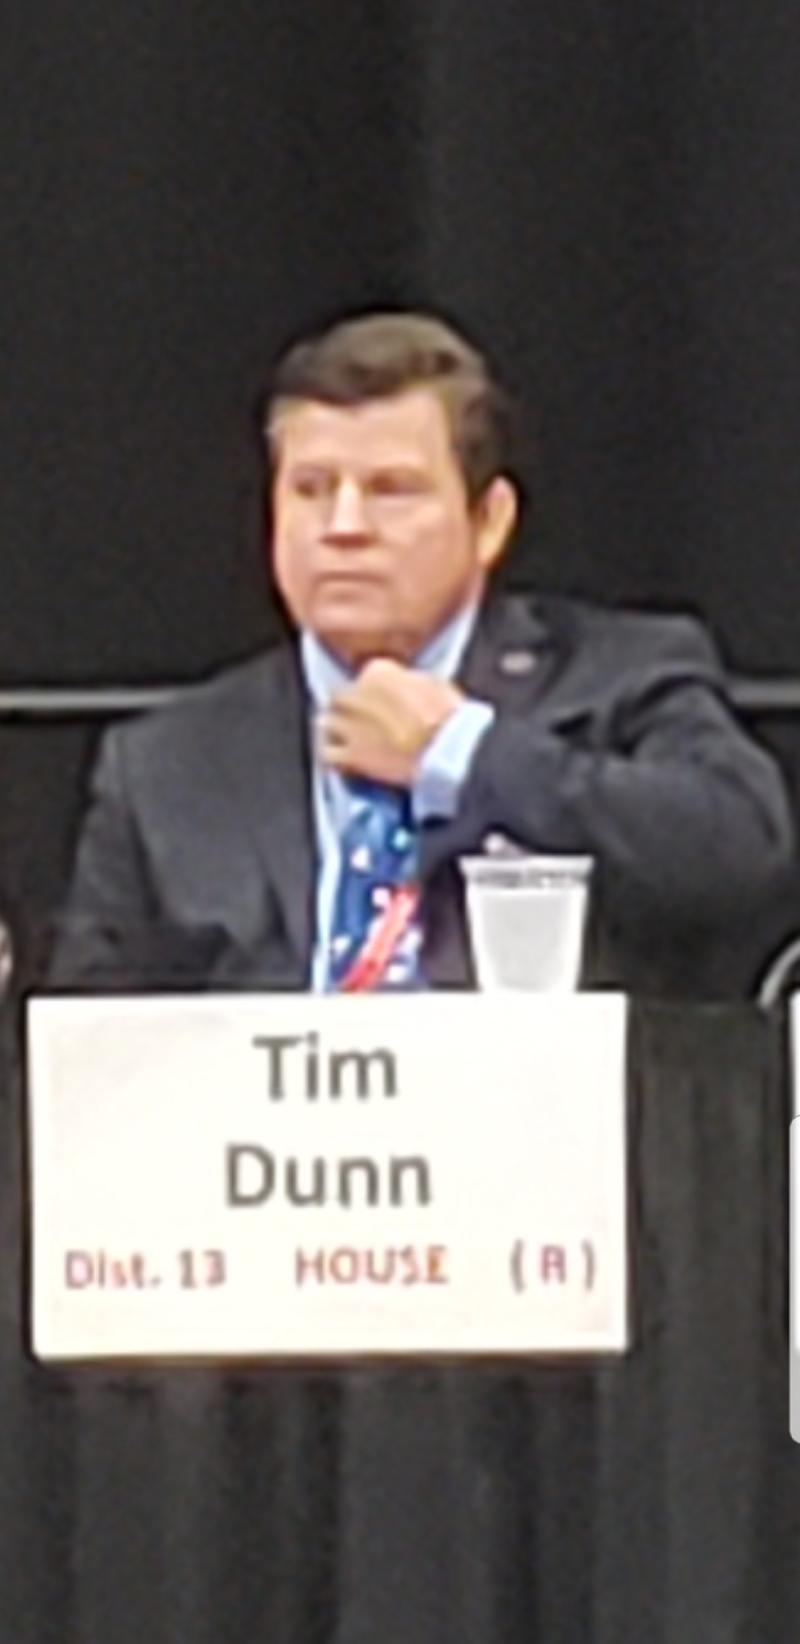 State Rep. Tim Dunn is running for re-election in District 13.